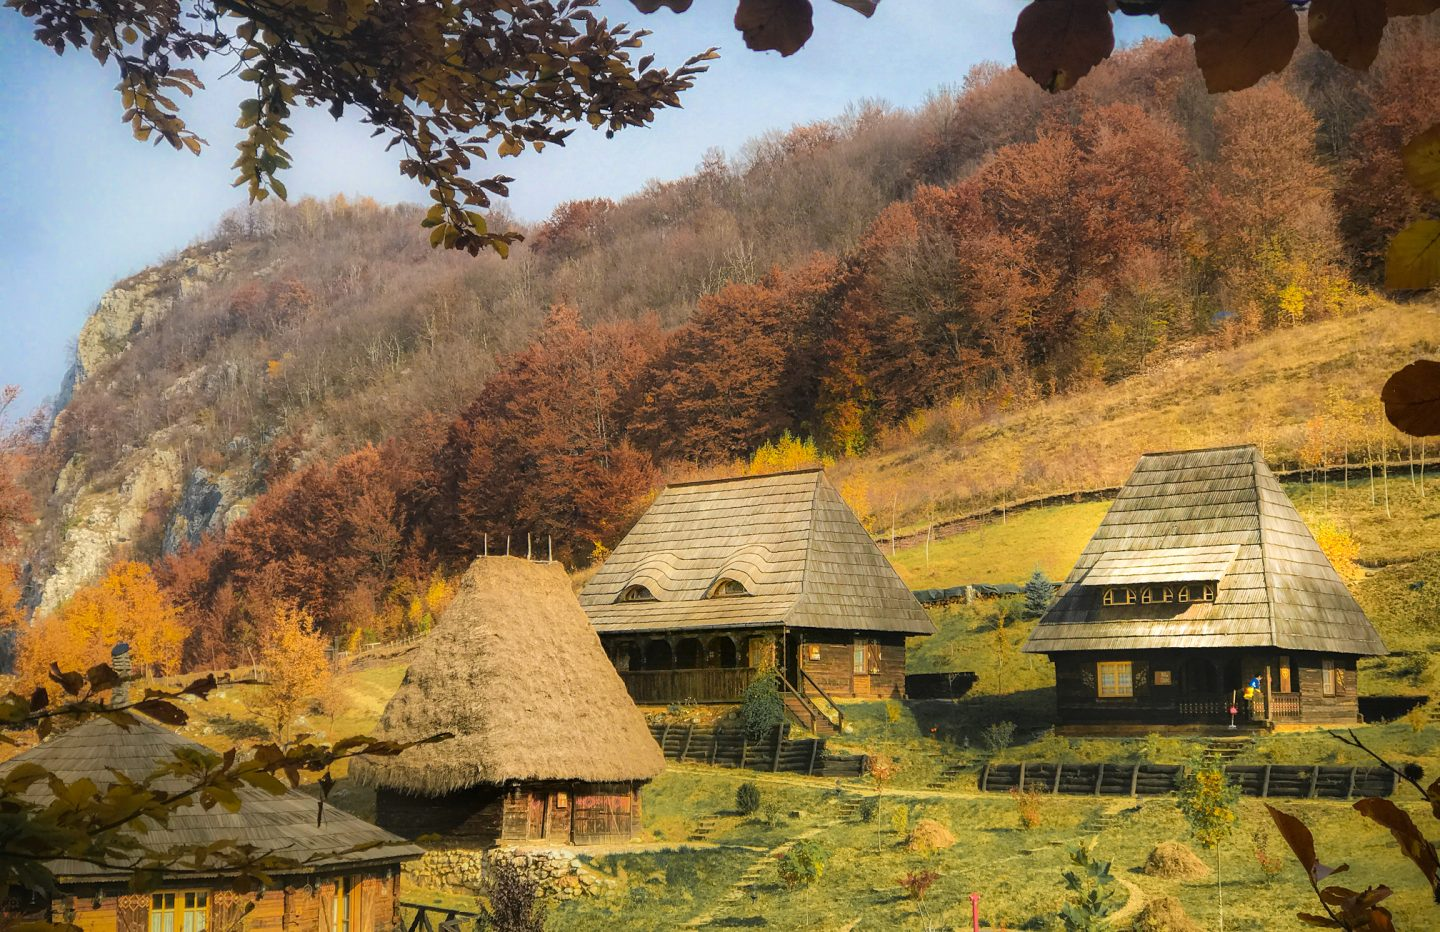 Raven's Nest – Our Favorite Romanian Getaway